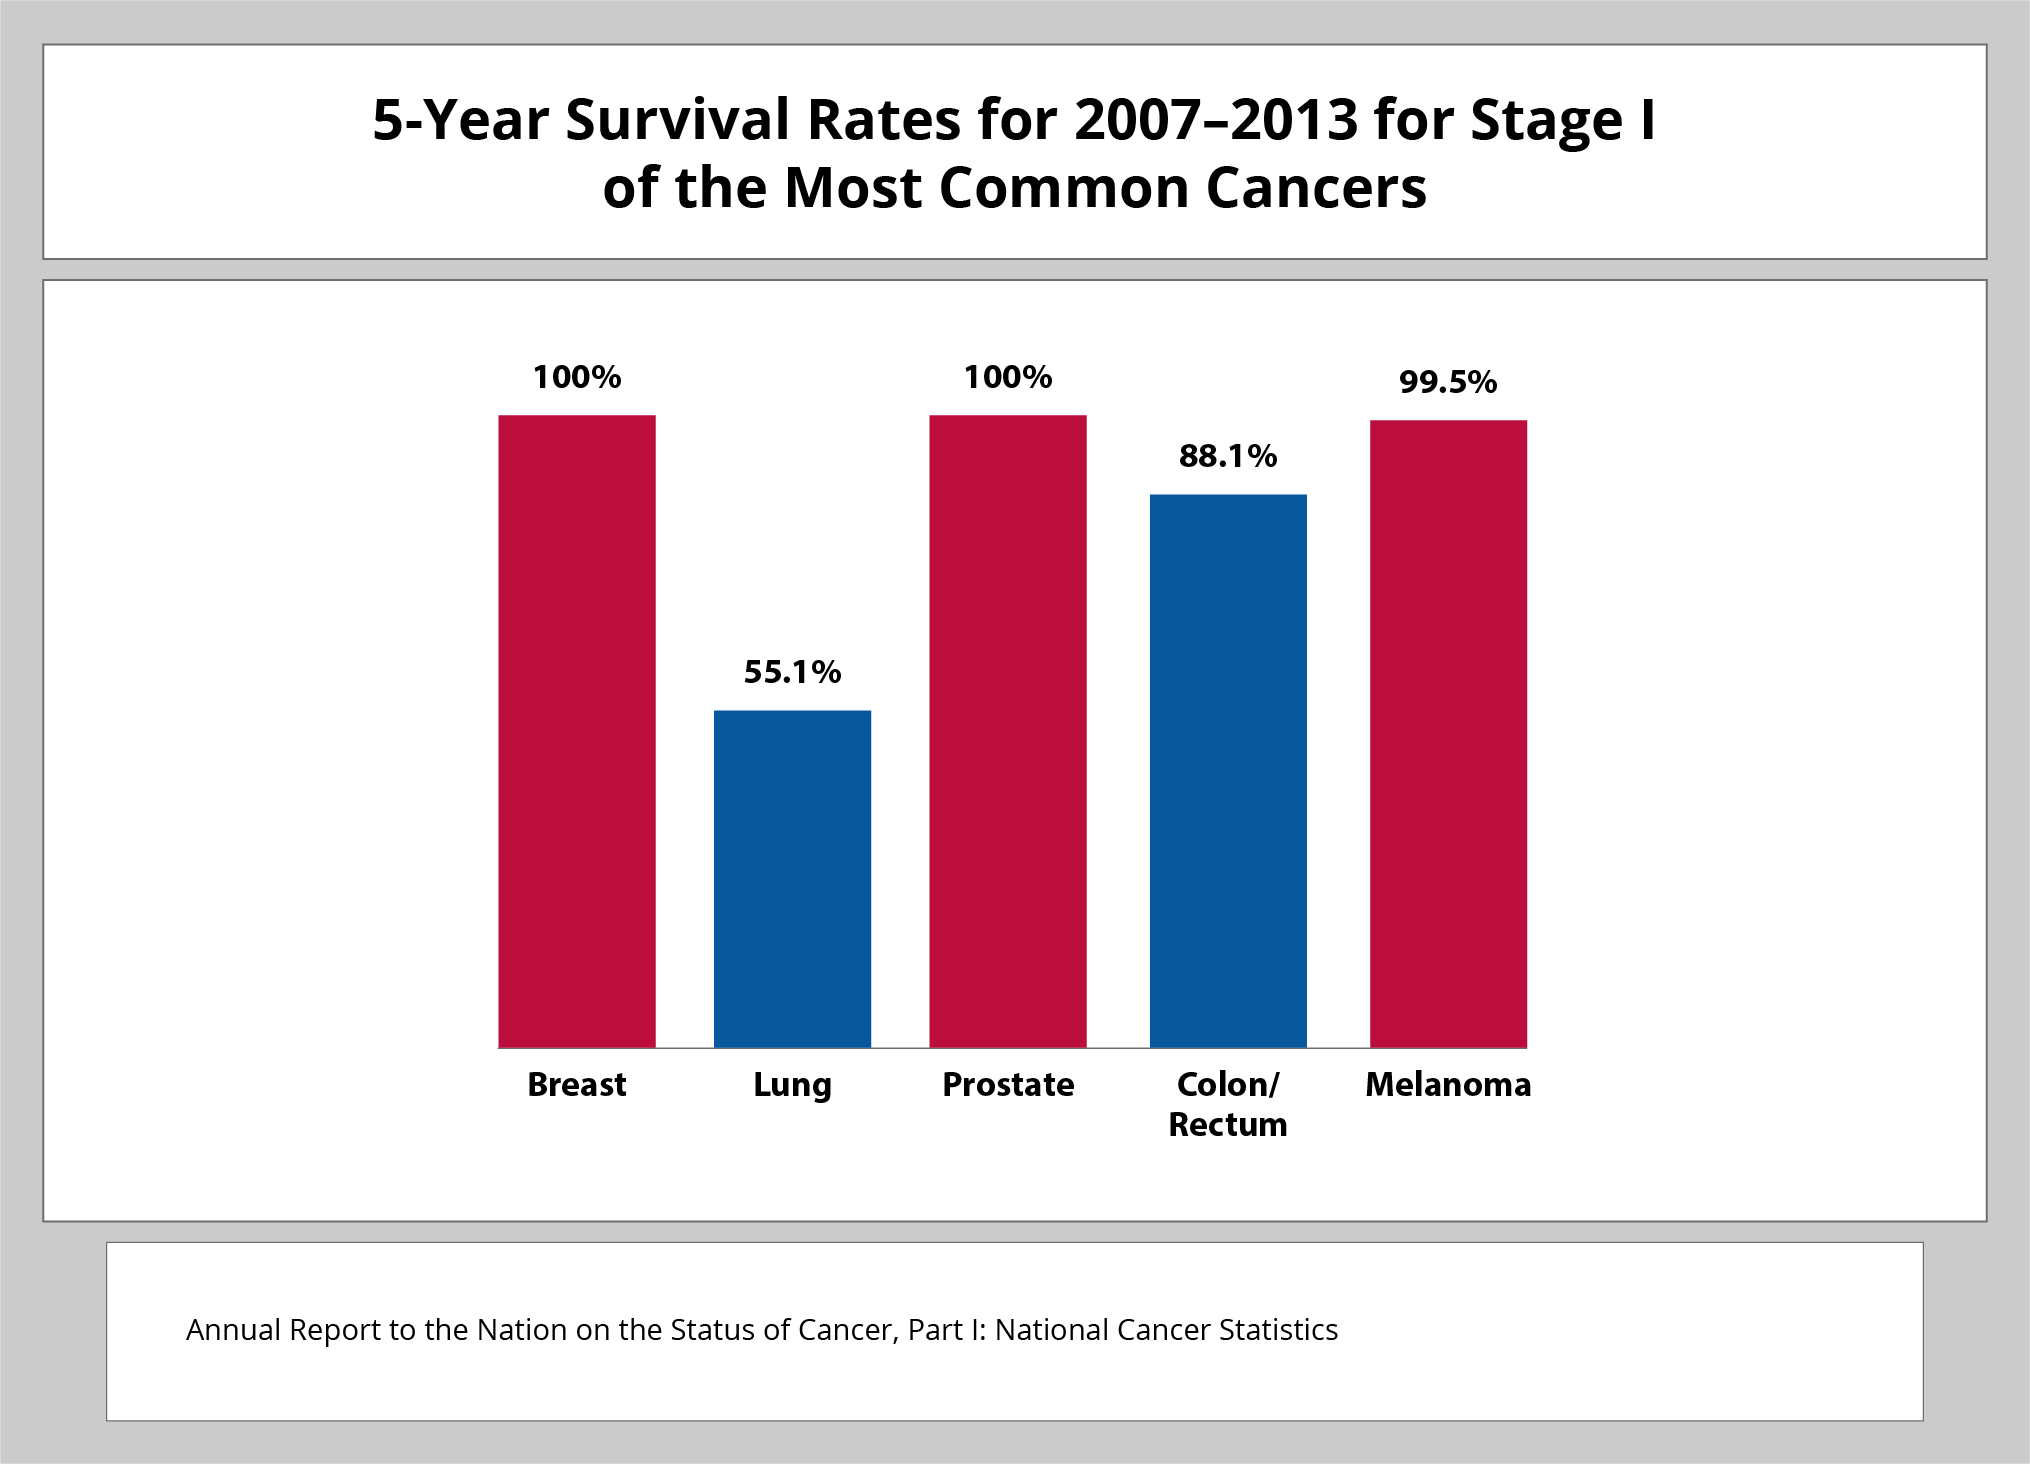 5-Year Survivial Rates for 2007-2013 for Stage 1 of the Most Common Cancers